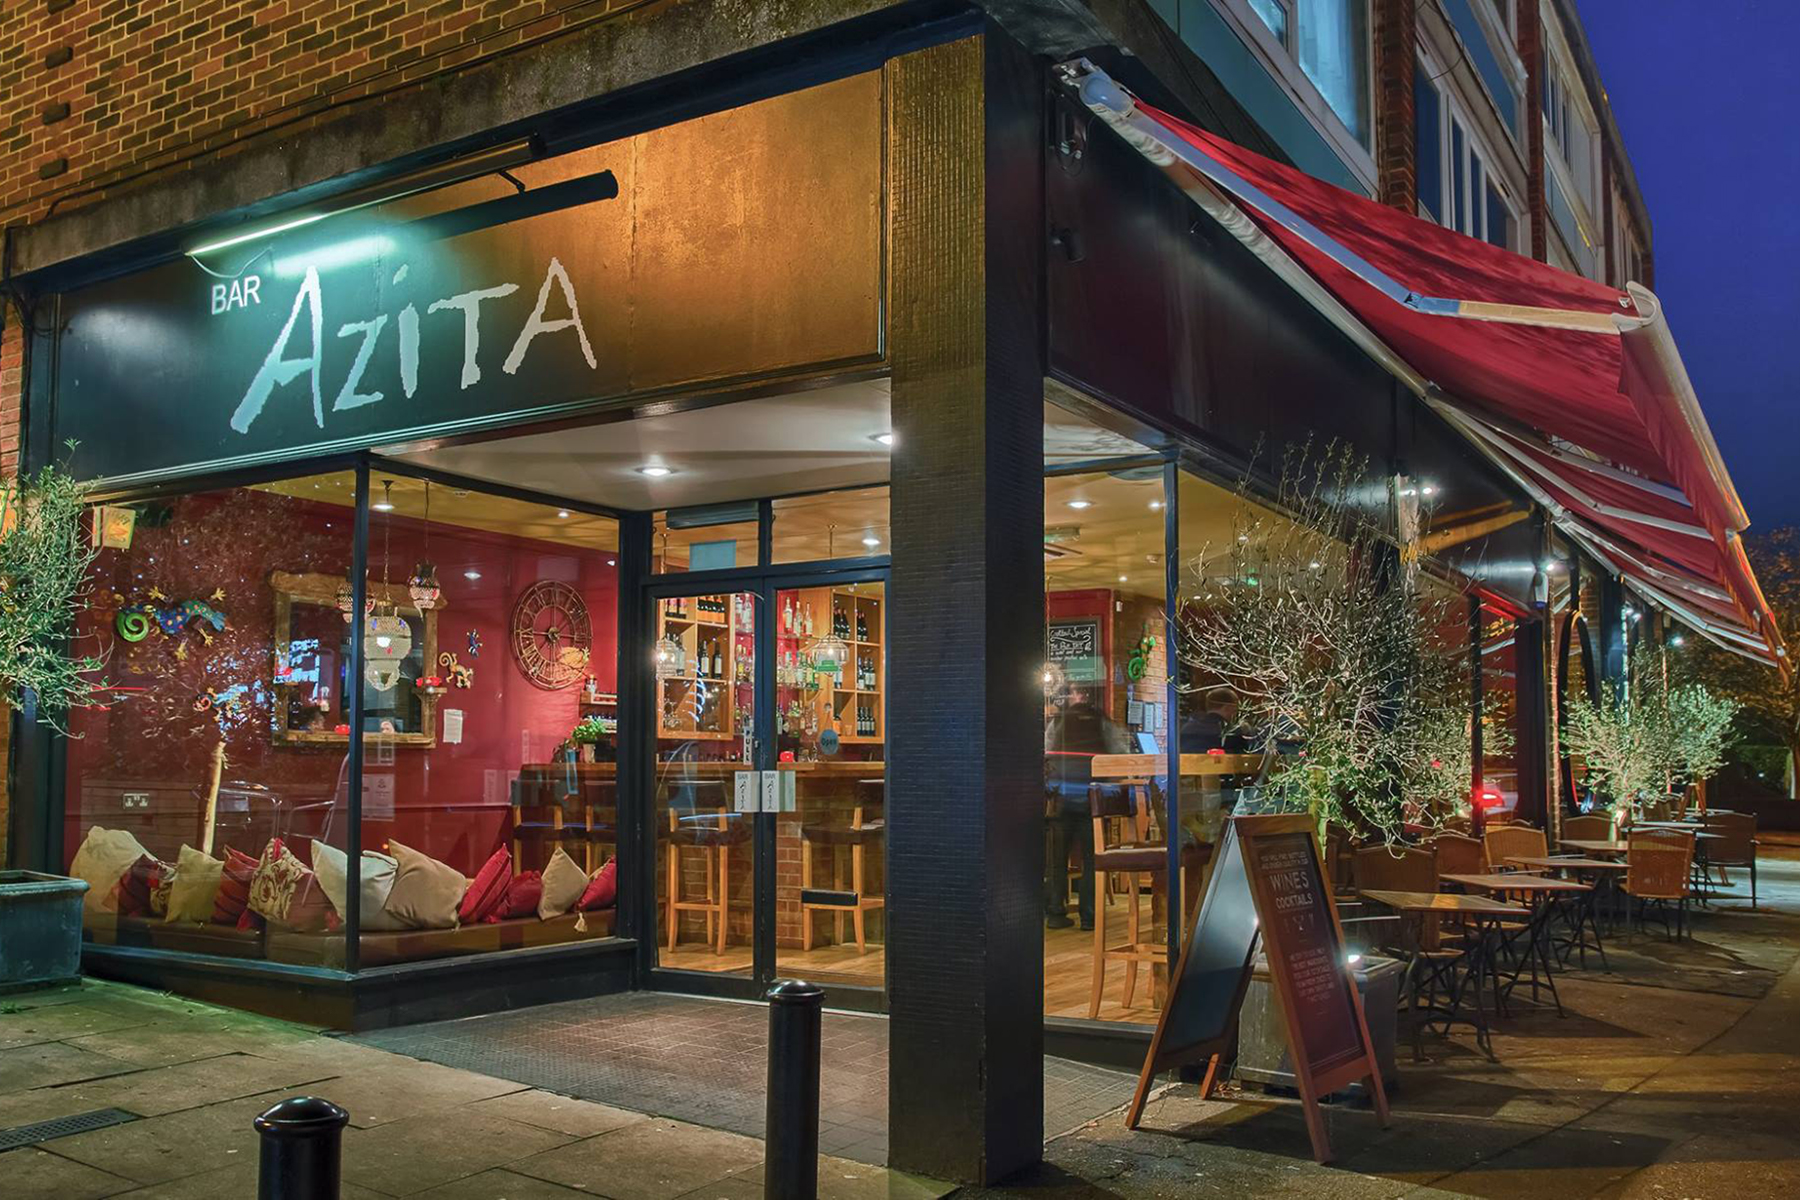 Bar Azita Awning